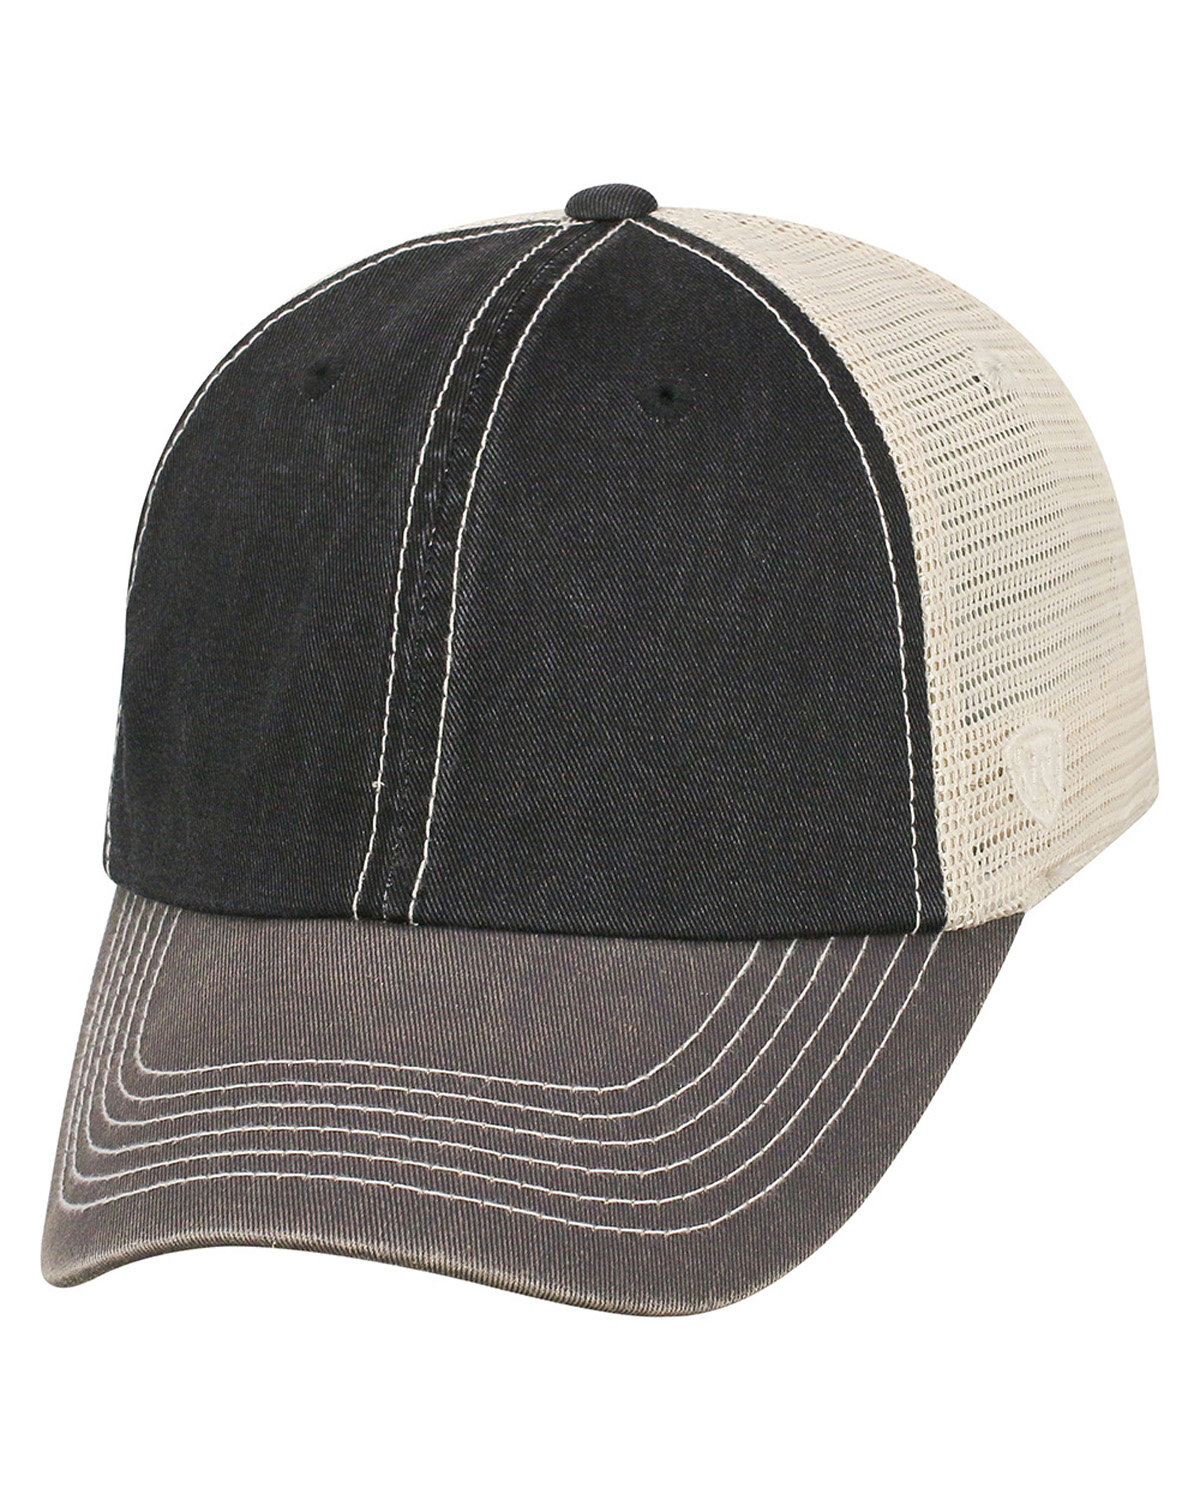 Top Of The World Adult Offroad Cap BLACK